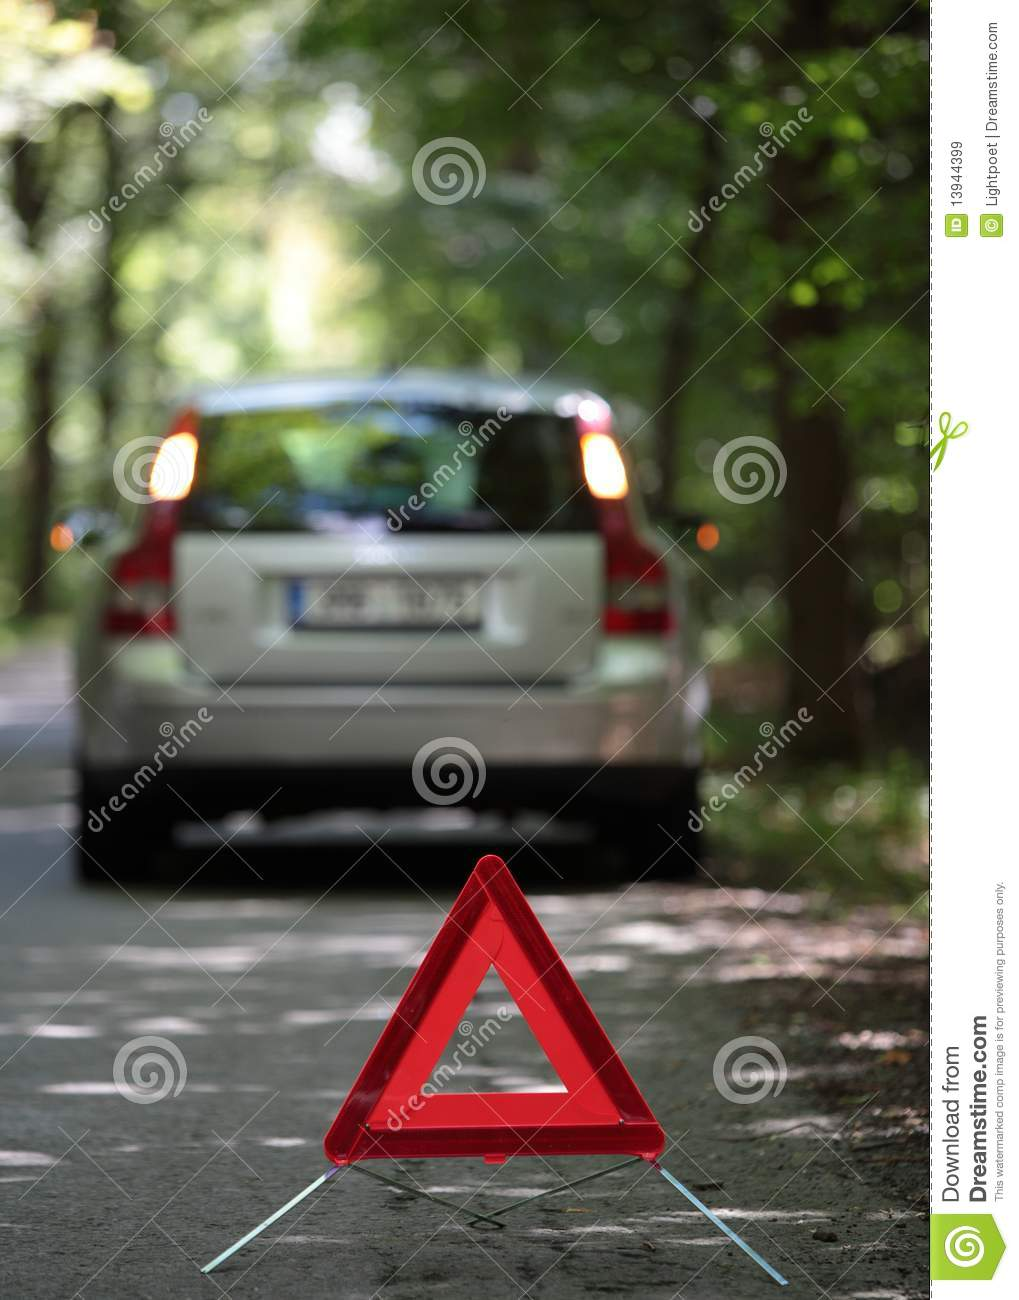 Broken Down Abandoned Stock Photos Broken Down Abandoned: Broken Down Car With Warning Triangle Royalty-Free Stock